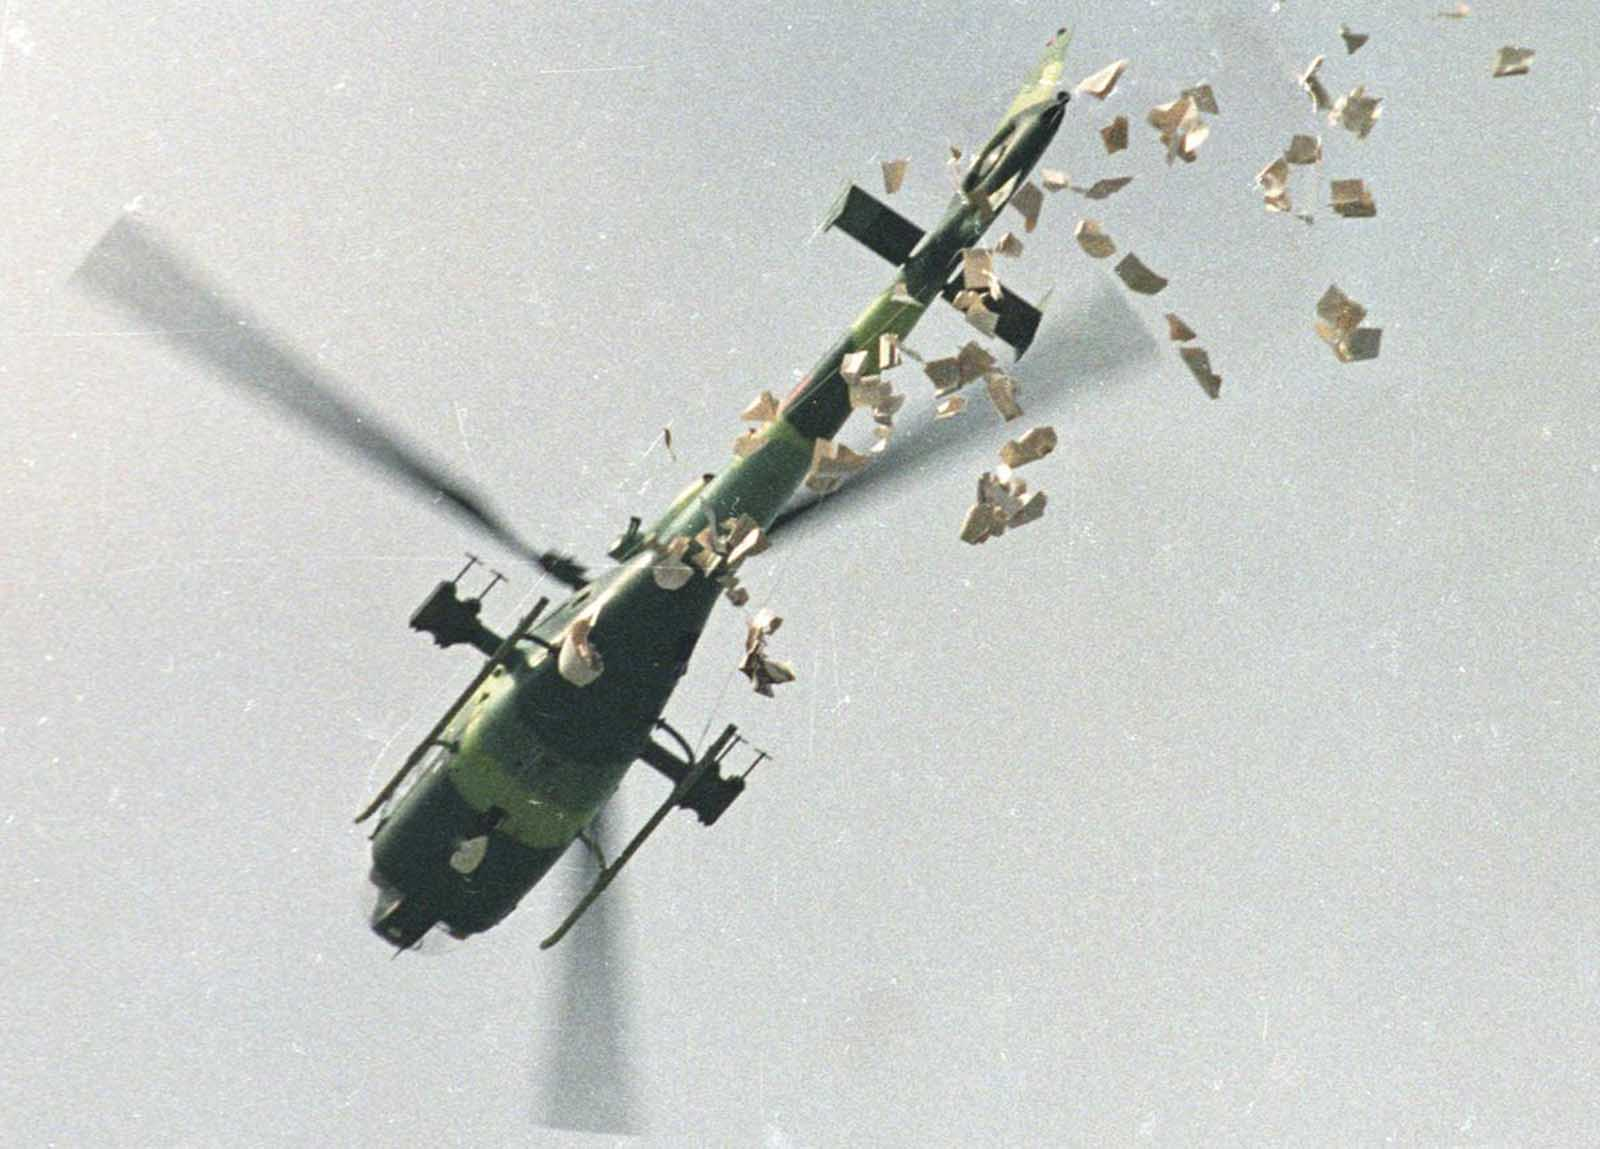 A military helicopter drops leaflets above Tiananmen Square which state that the student protesters should leave the Square as soon as possible, on May 22, 1989.